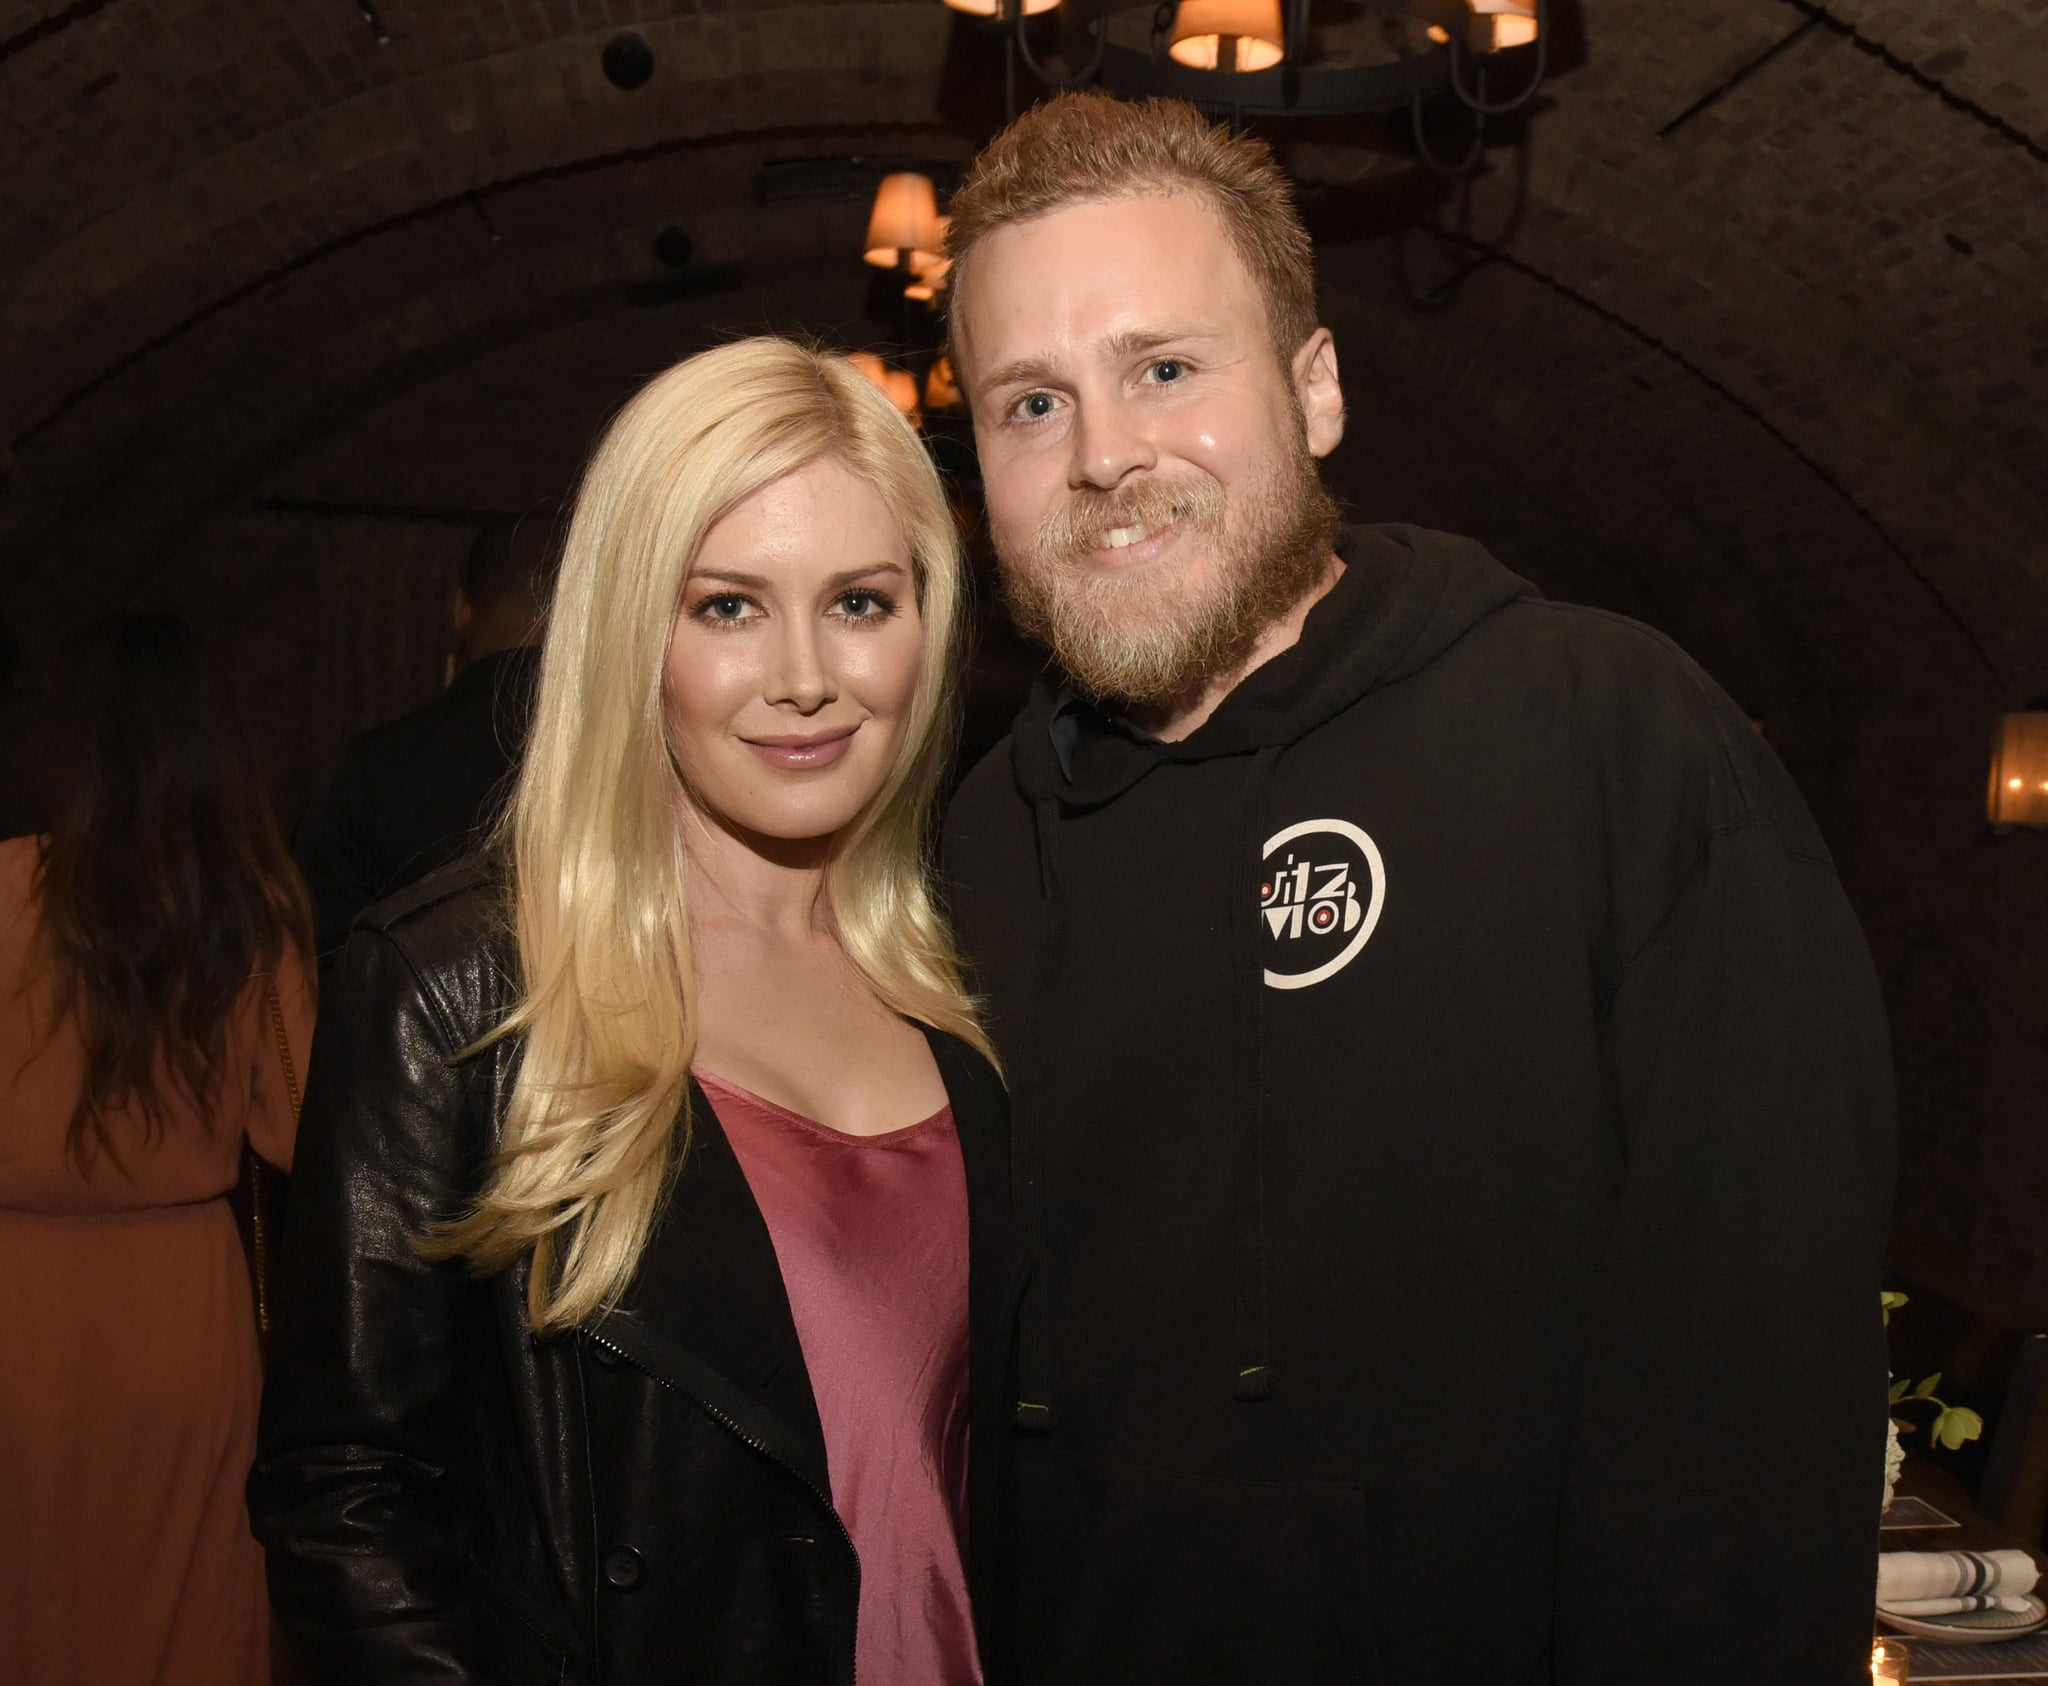 Heidi Montag & Spencer Pratt Welcome A Baby Boy - Inside Her Dramatic Delivery!